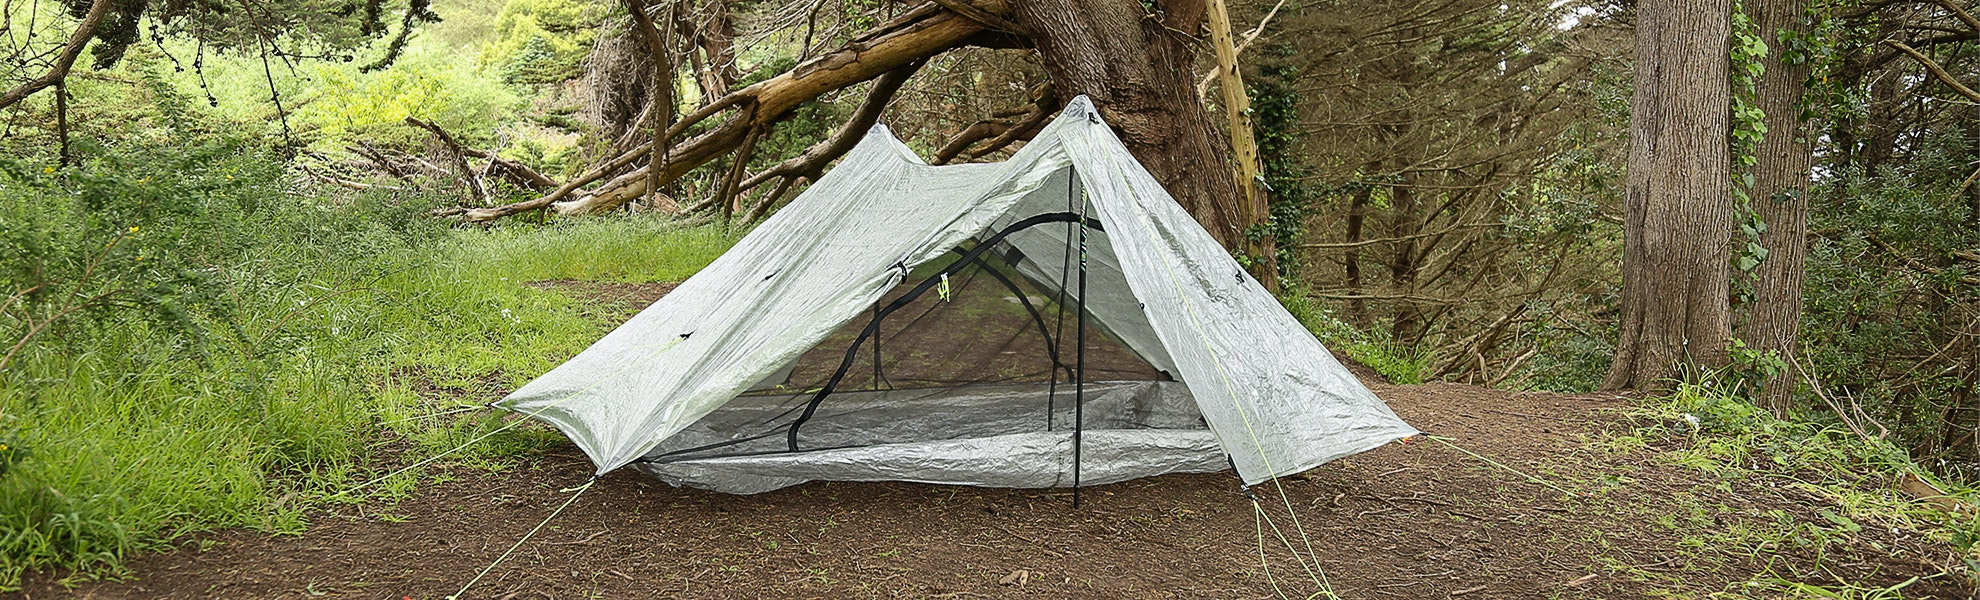 ZPacks Duplex u0026 Triplex Tents & ZPacks Duplex u0026 Triplex Tents | Price u0026 Reviews | Massdrop